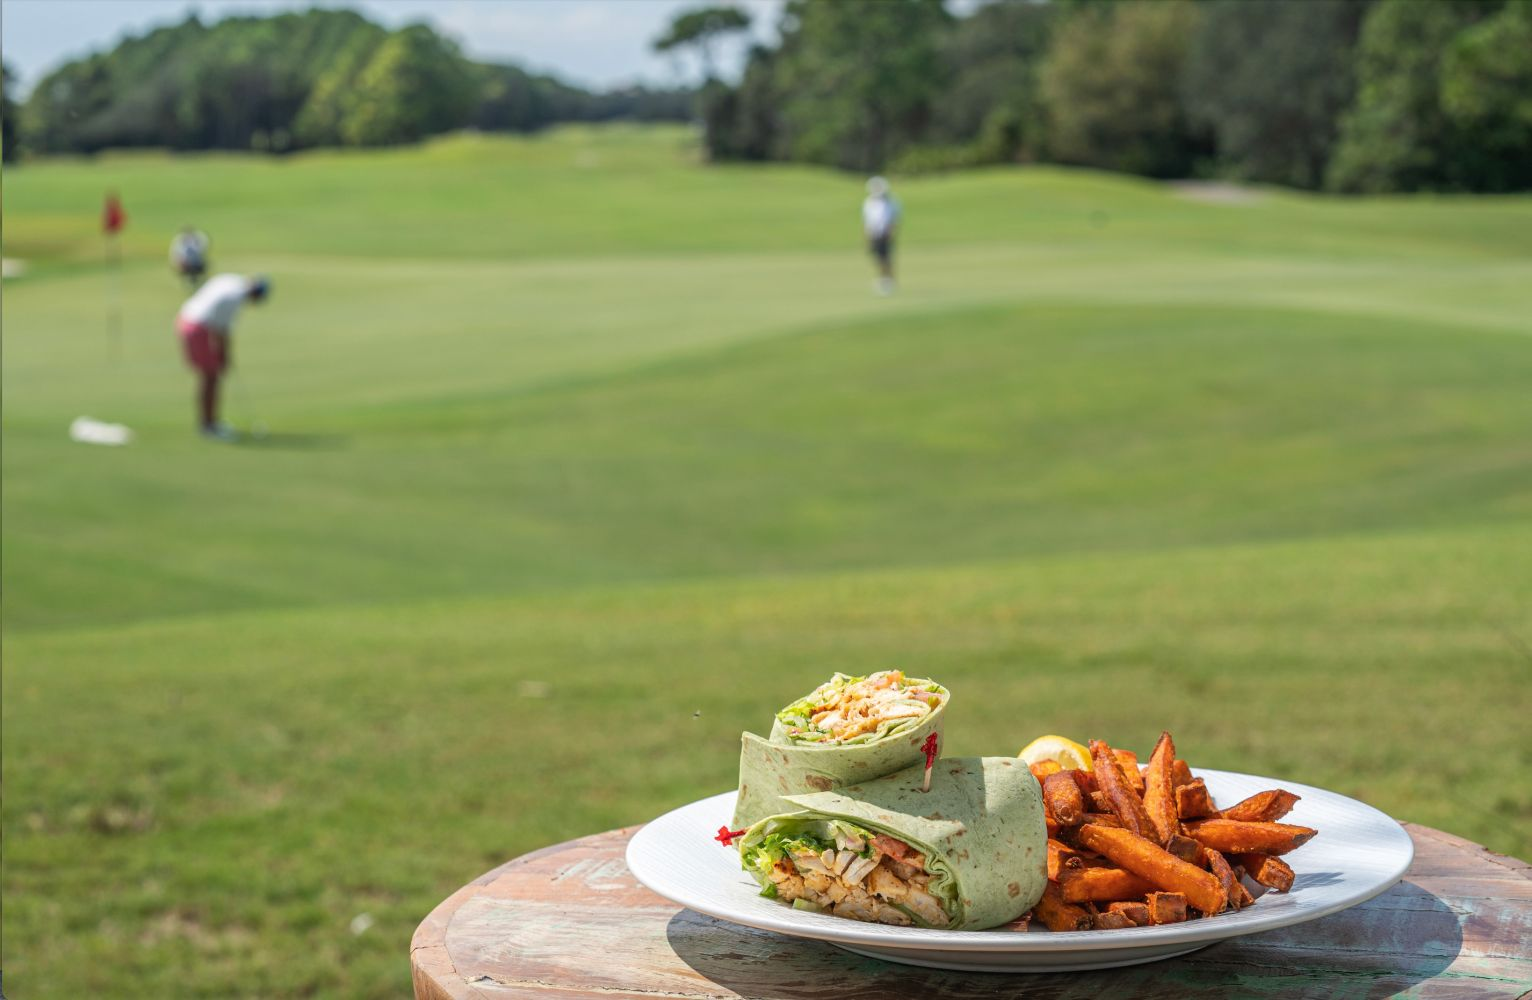 kiva grill lunch with golf background